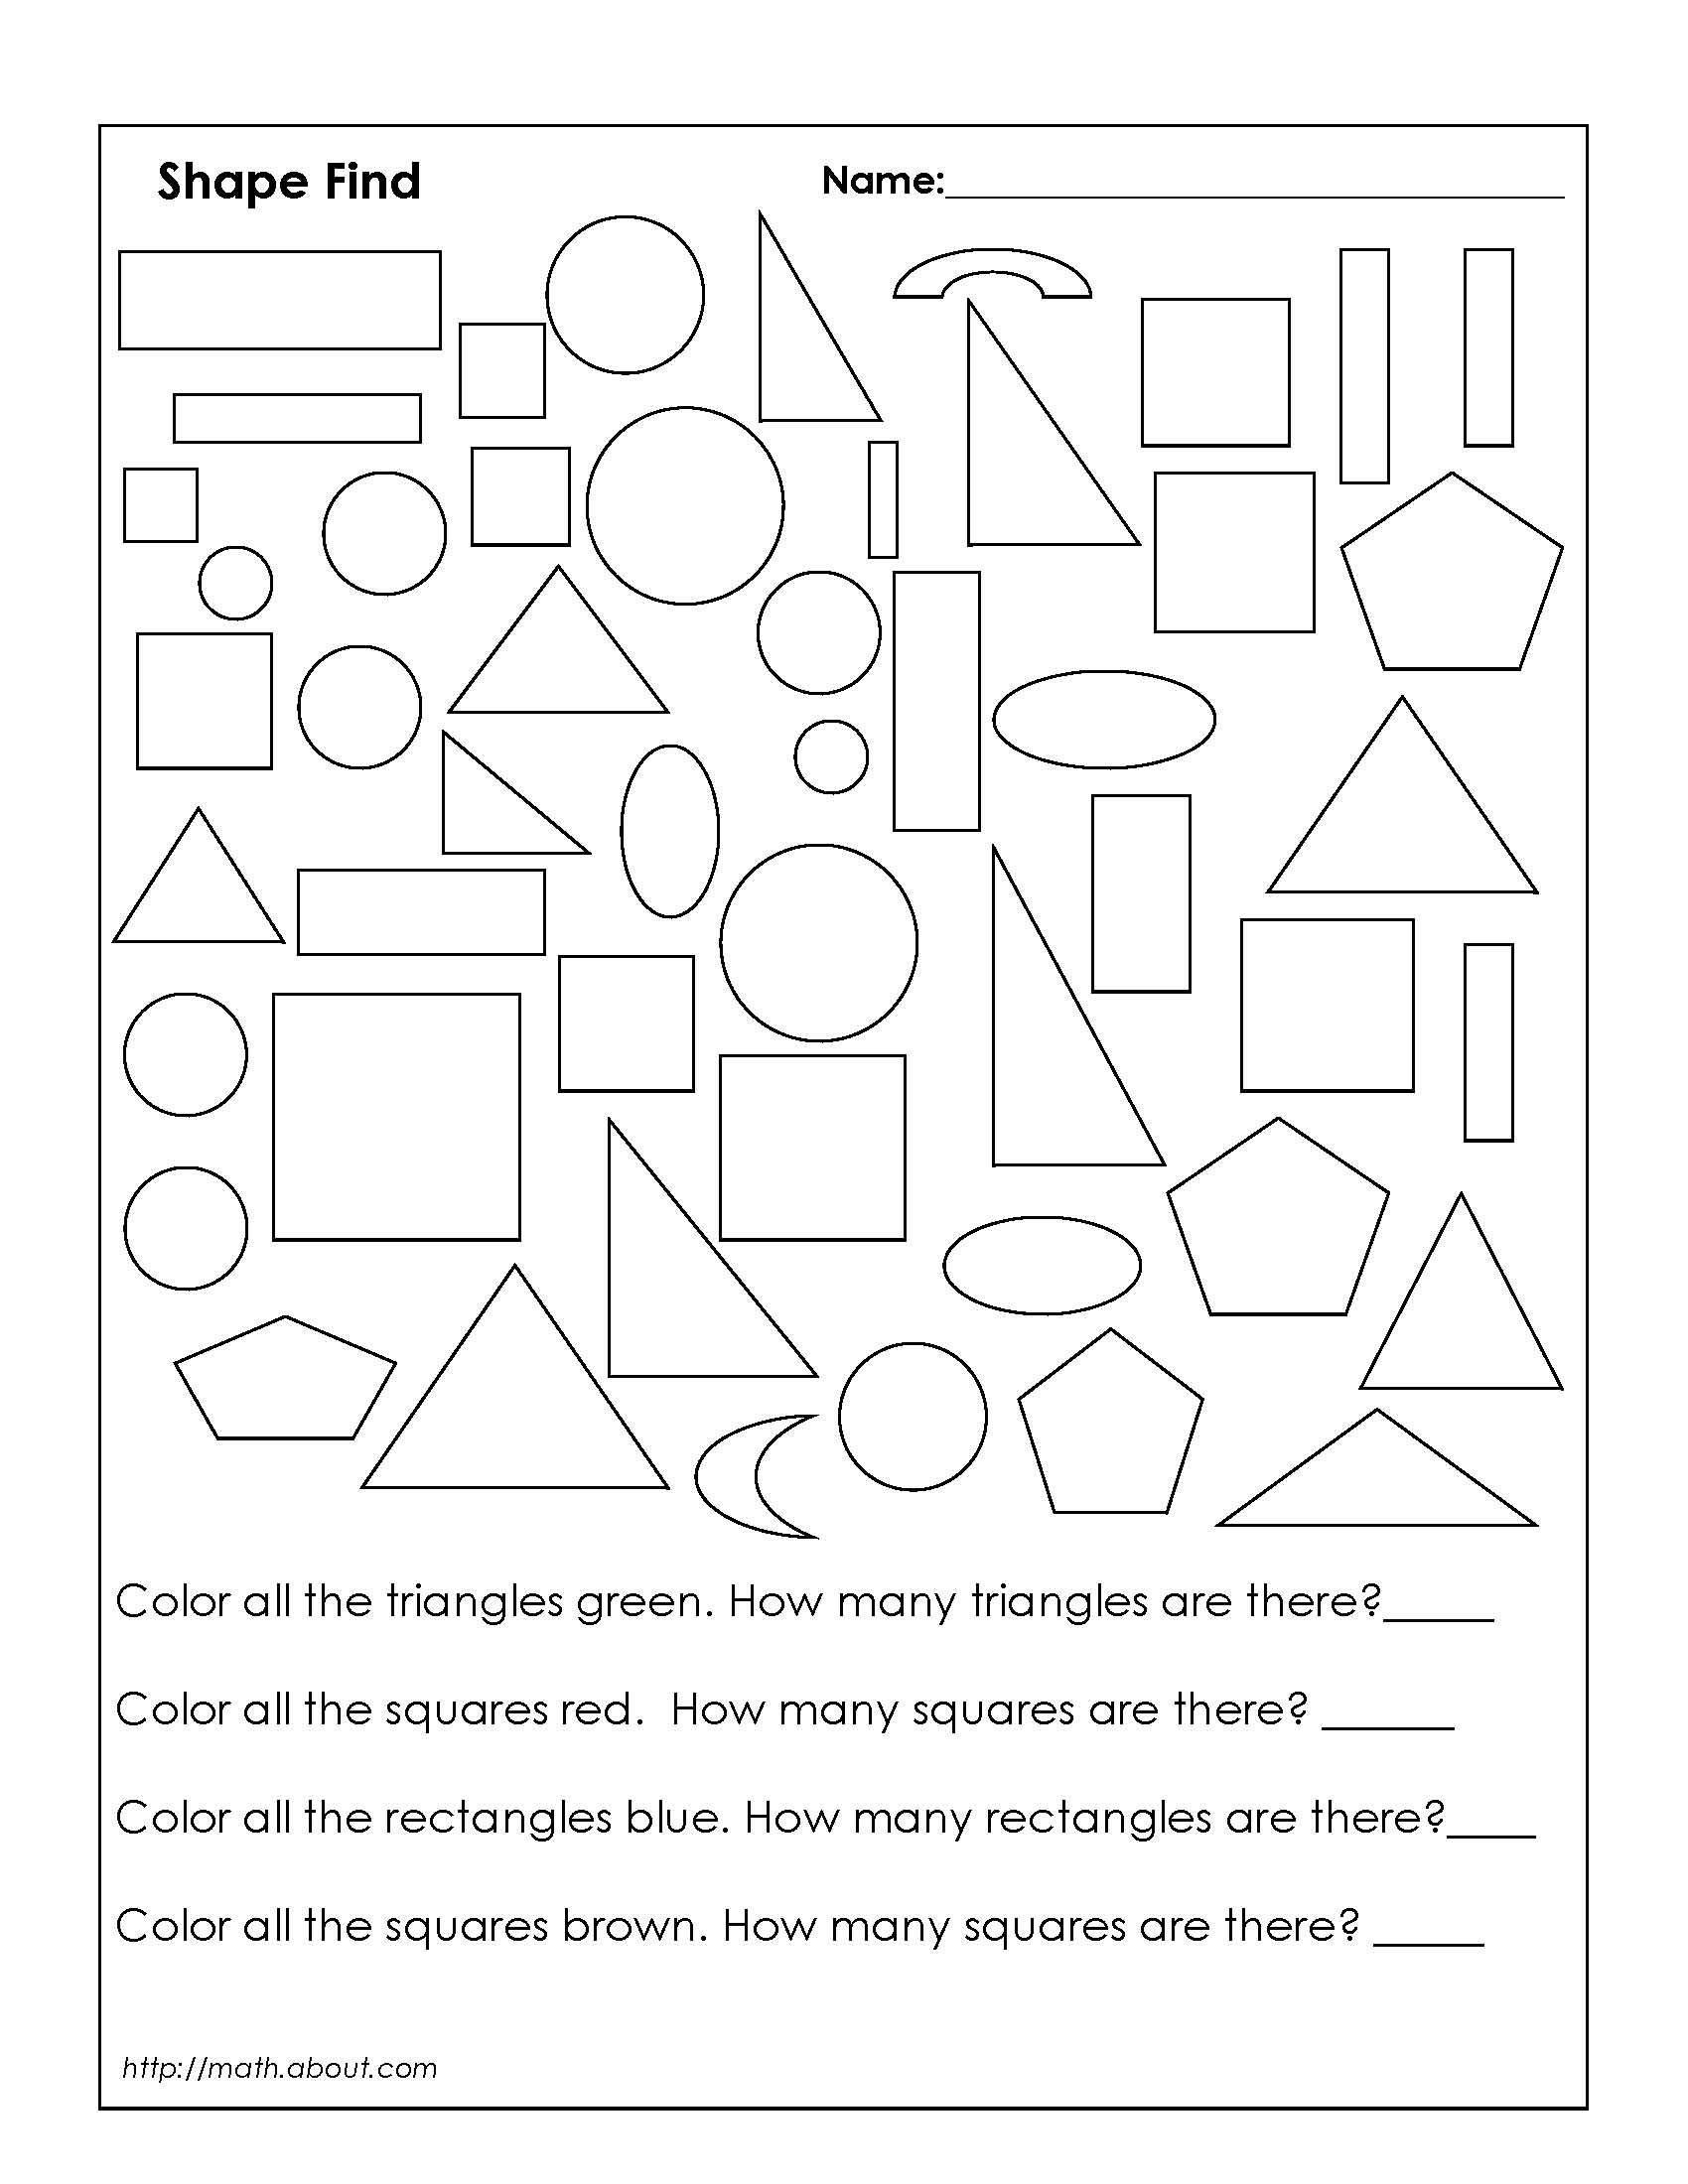 Geometric Shapes Worksheets 2nd Grade 18 Best Rectangles Triangles Worksheets Images On Best